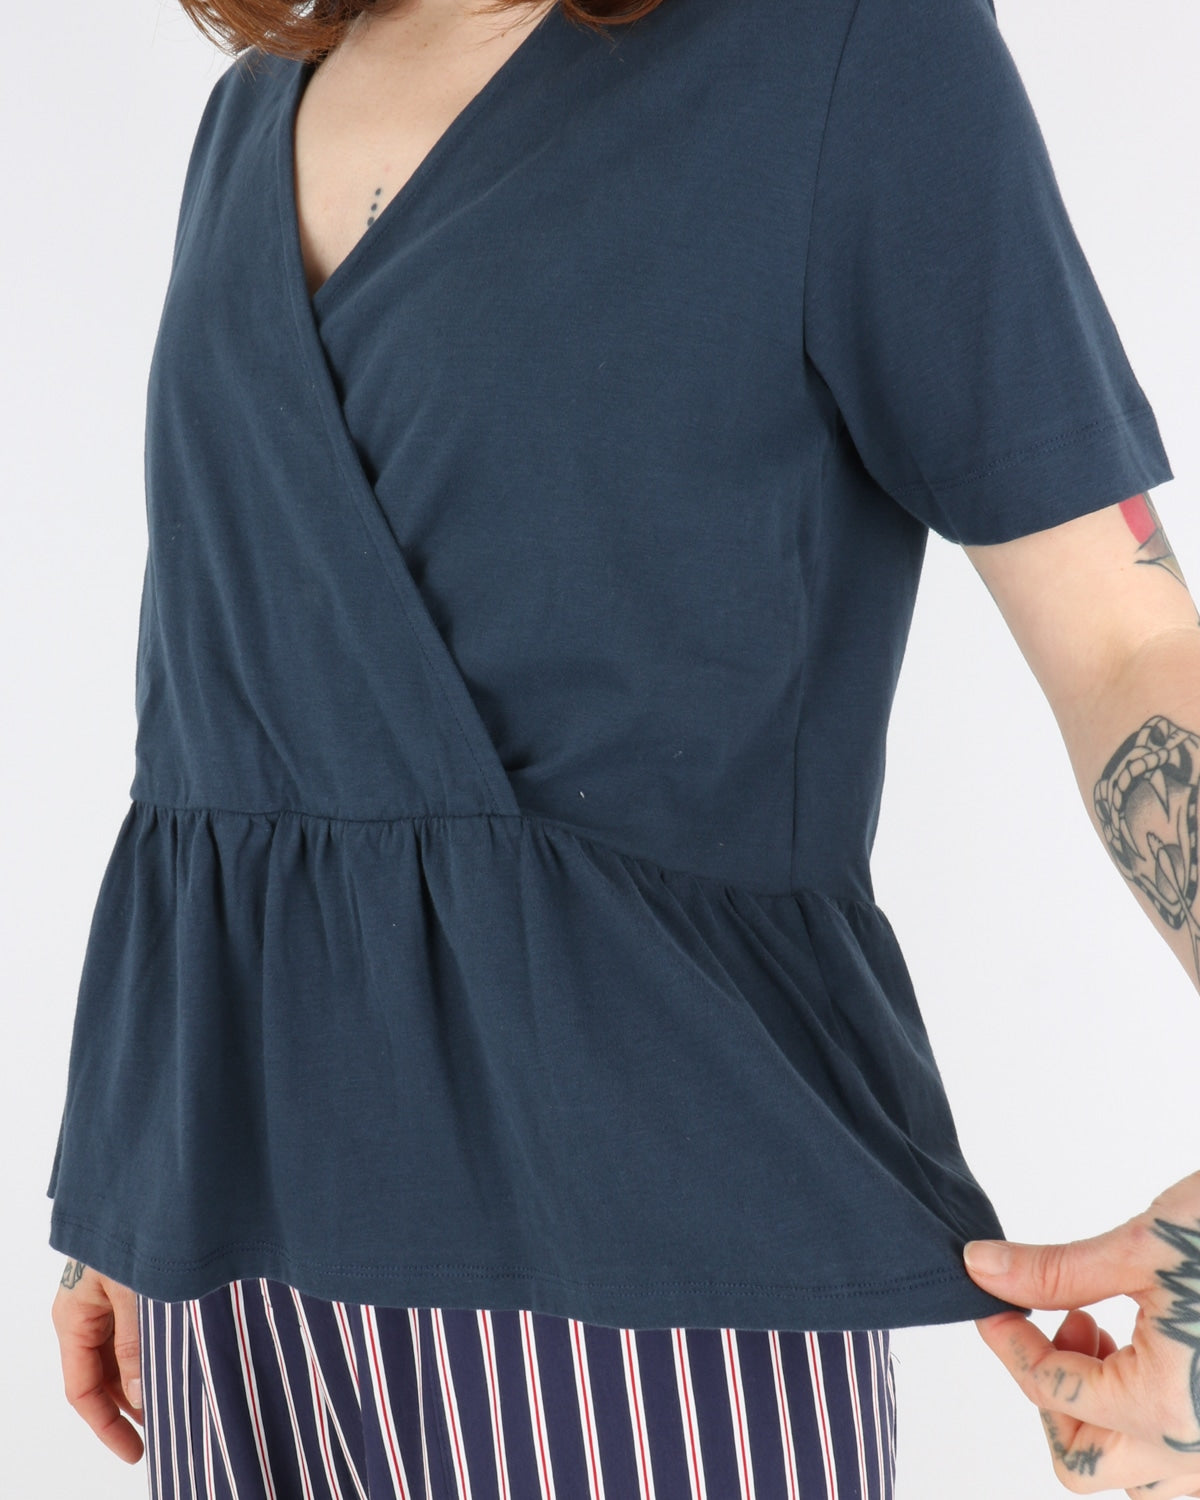 libertine libertine_grace top_navy_3_3